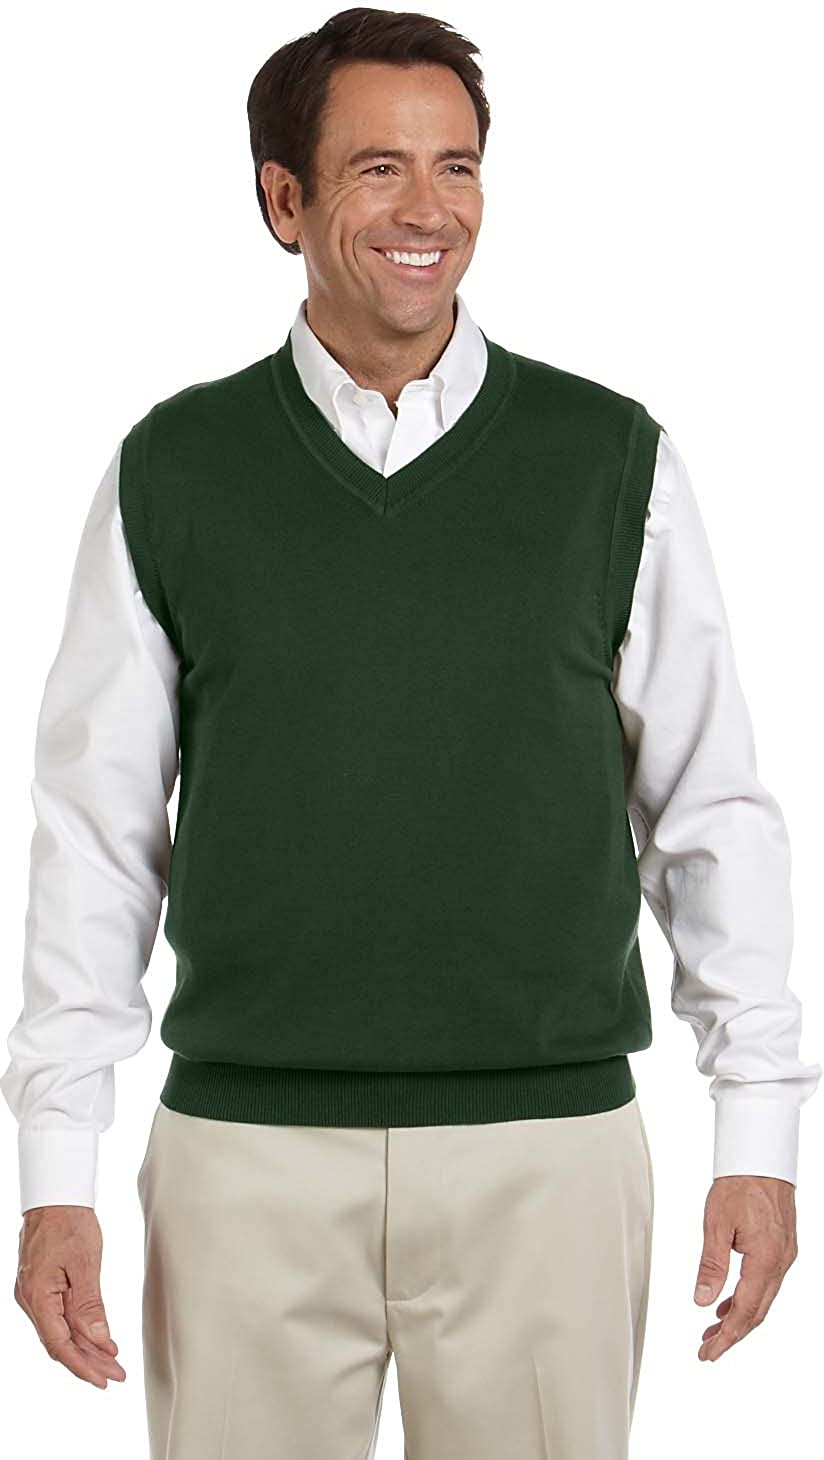 Find great deals on eBay for mens sweater vest. Shop with confidence.